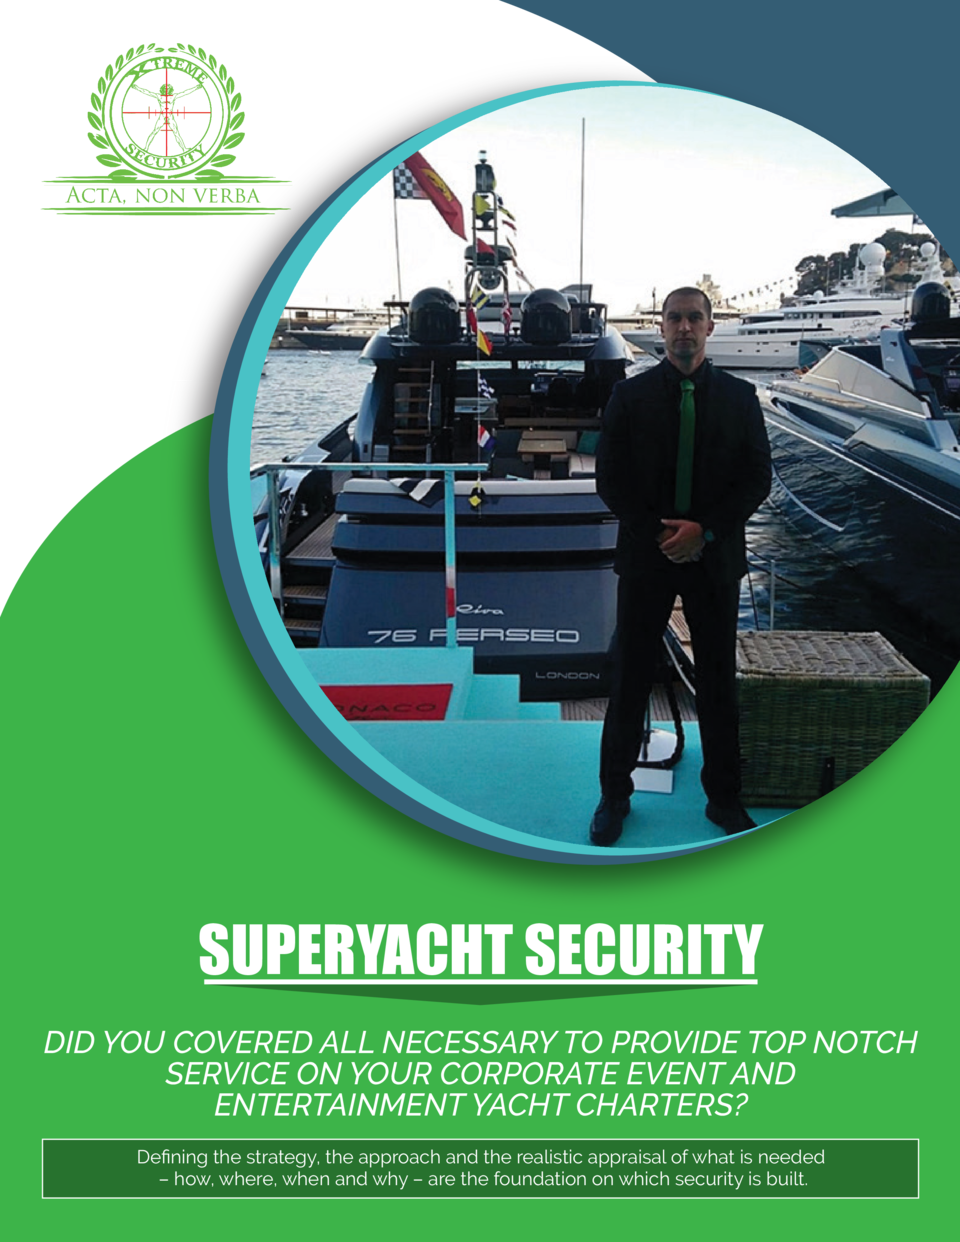 SUPERYACHT SECURITY DID YOU COVERED ALL NECESSARY TO PROVIDE TOP NOTCH SERVICE ON YOUR CORPORATE EVENT AND ENTERTAINMENT Y...